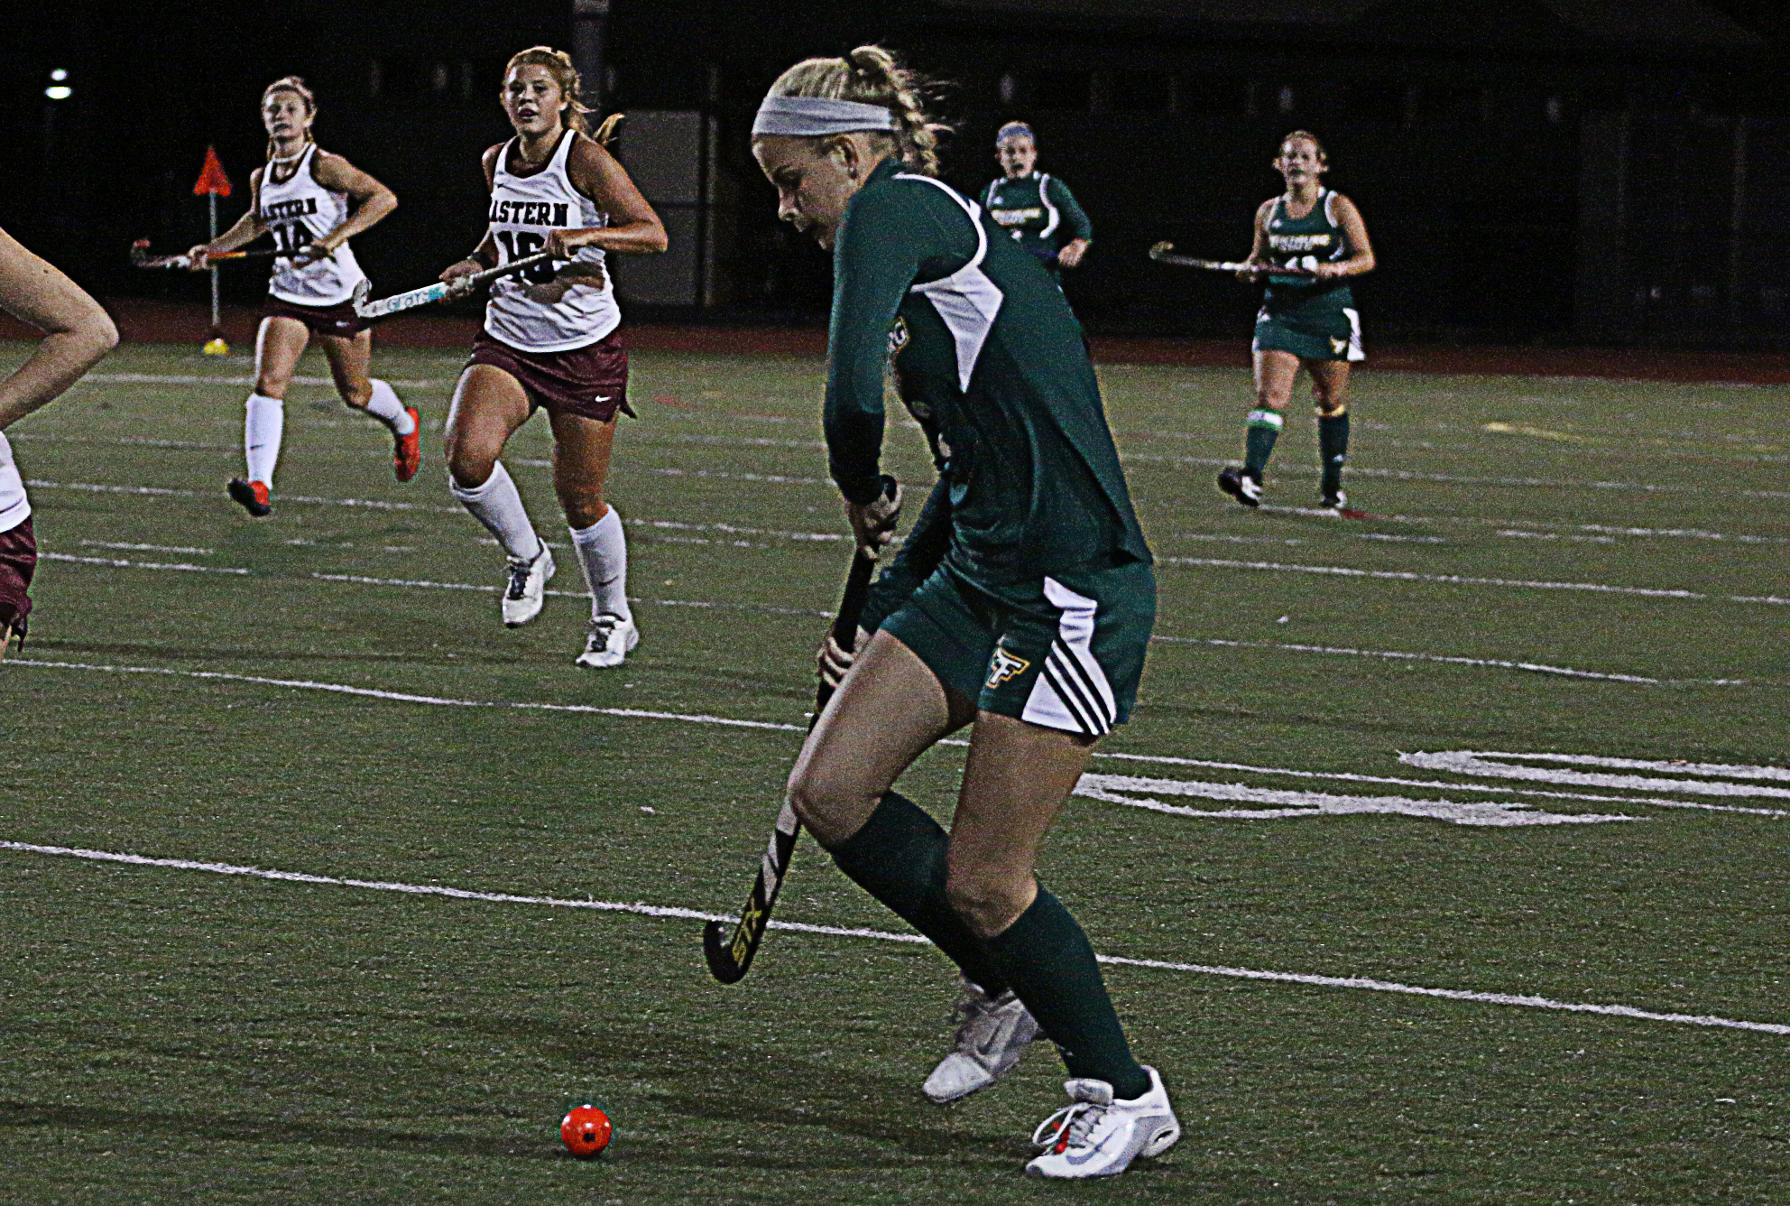 Fitchburg State Blanked by Worcester State, 3-0